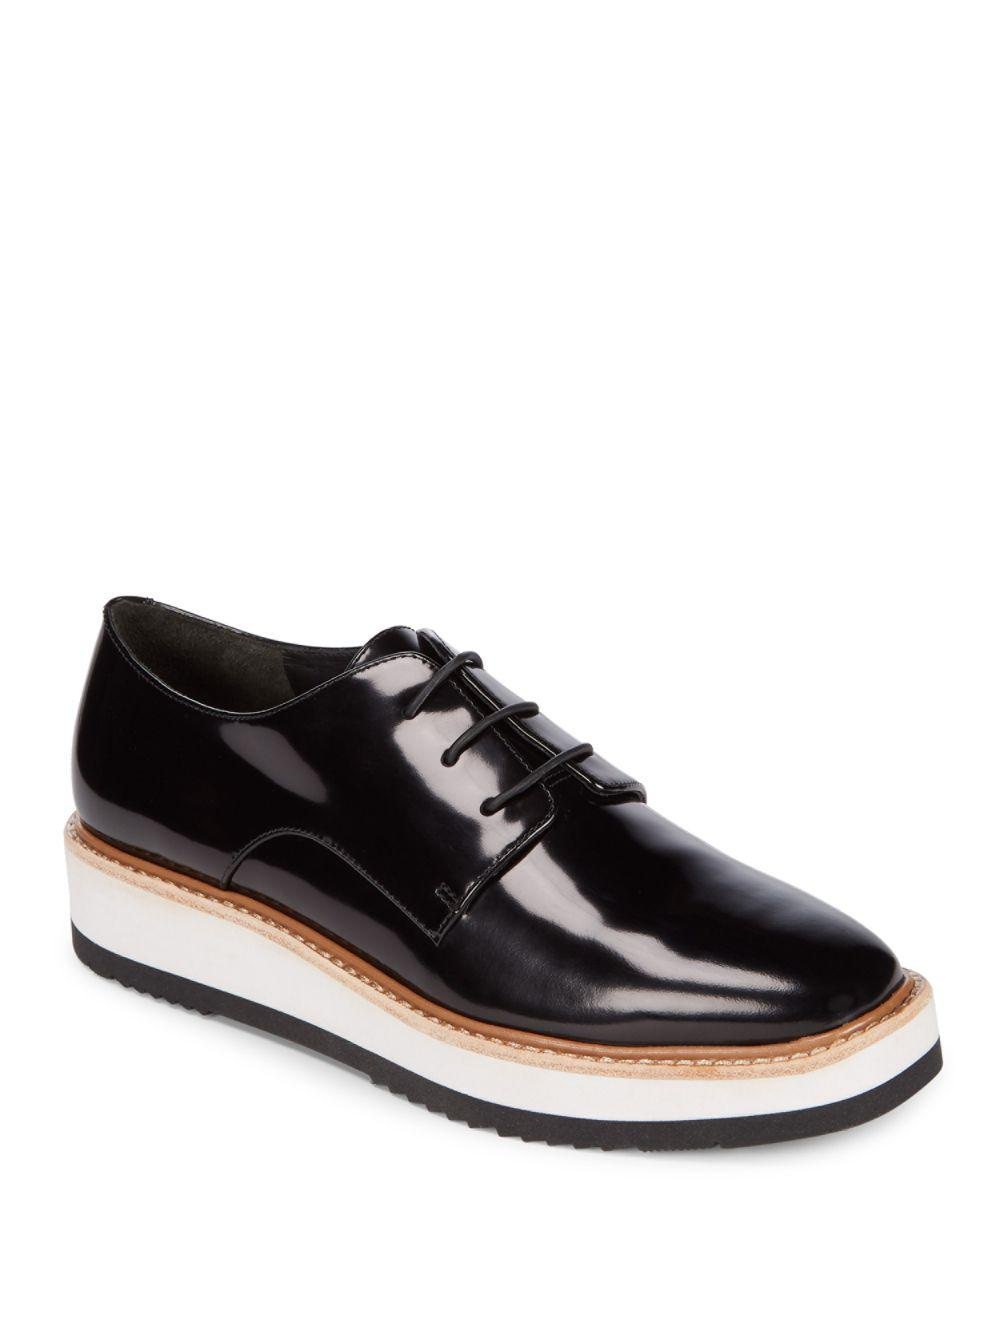 Vince - Black Reed Patent Leather Platform Shoes - Lyst. View fullscreen f98693046